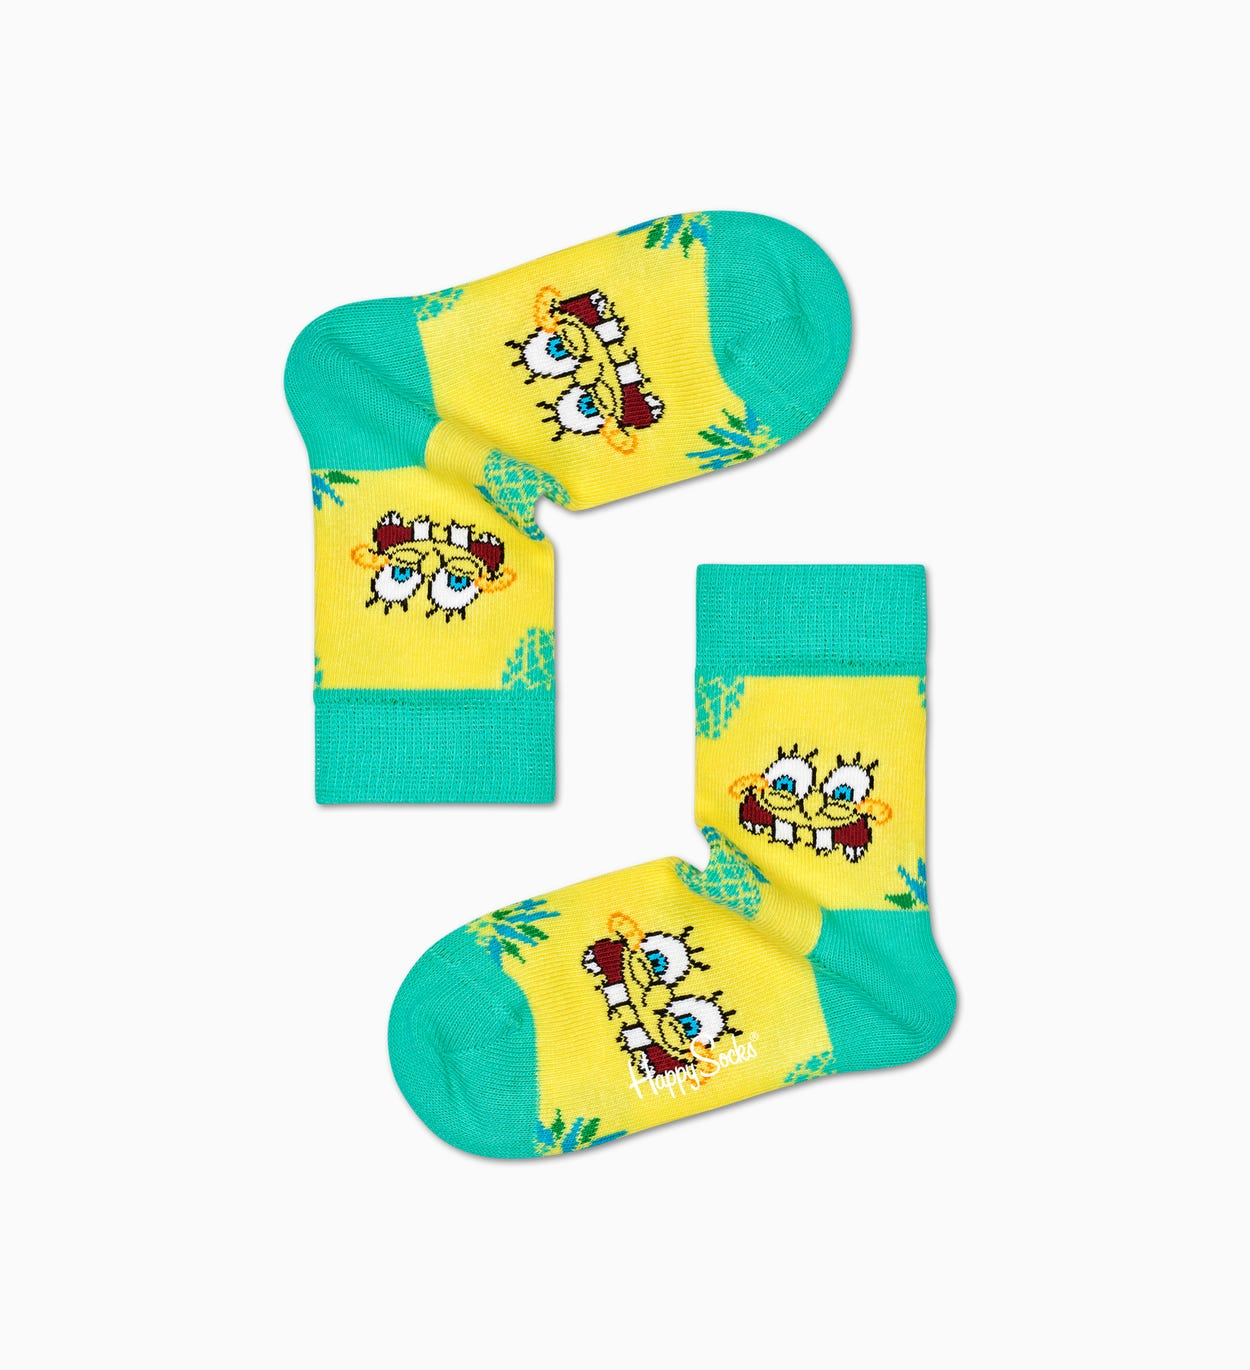 Happy Socks x Sponge Bob: Fineapple Surprise Socks for kids